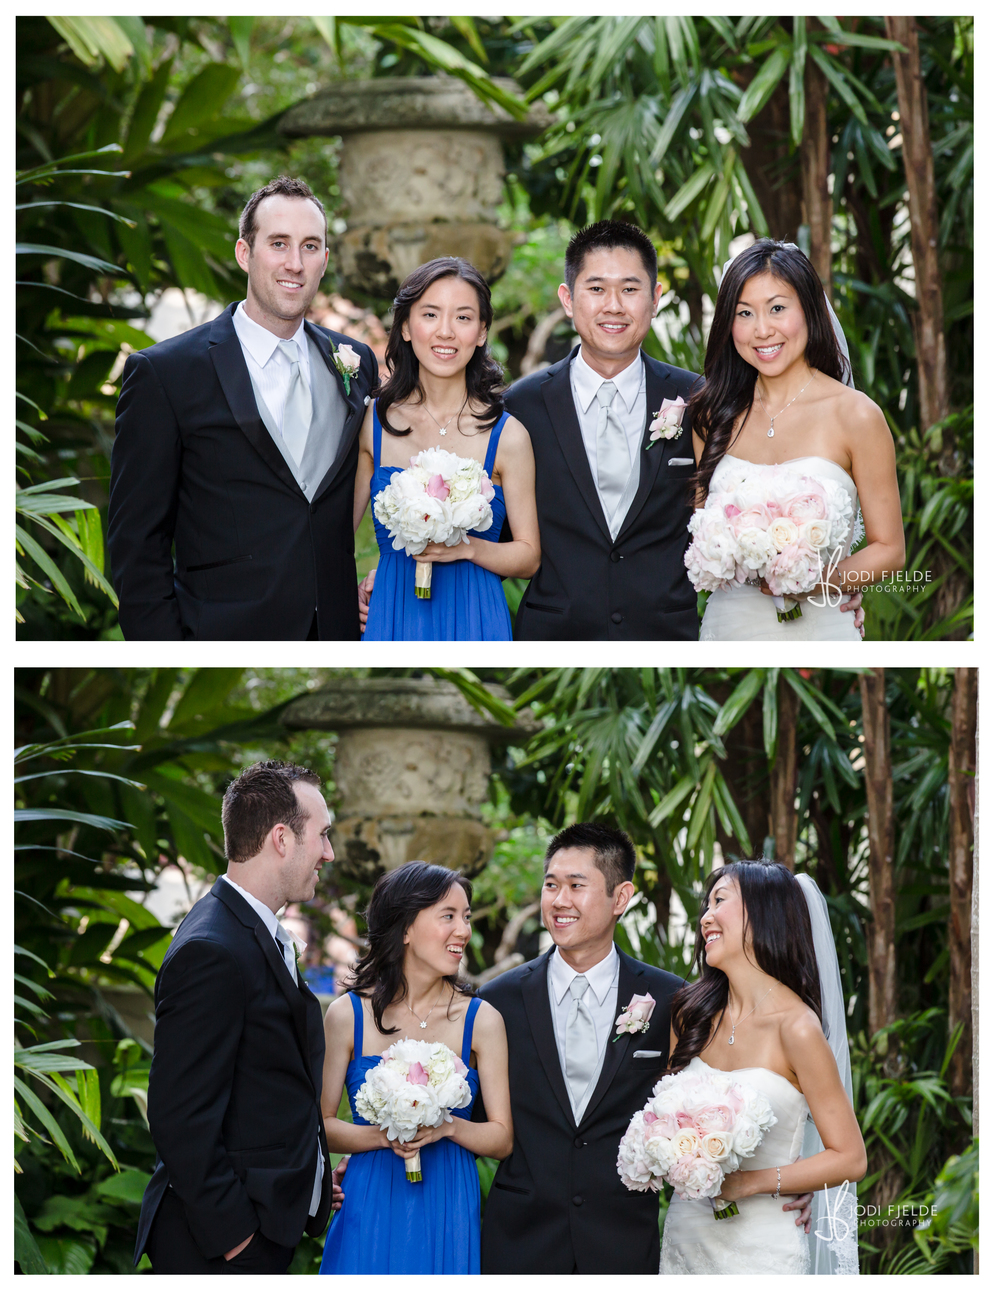 Lake_Pavilion_Wedding_West_Palm_Beach_Jodi_Fjelde_Photography_Betty_Alex_Sociaety_Of_Four _Arts_11.jpg